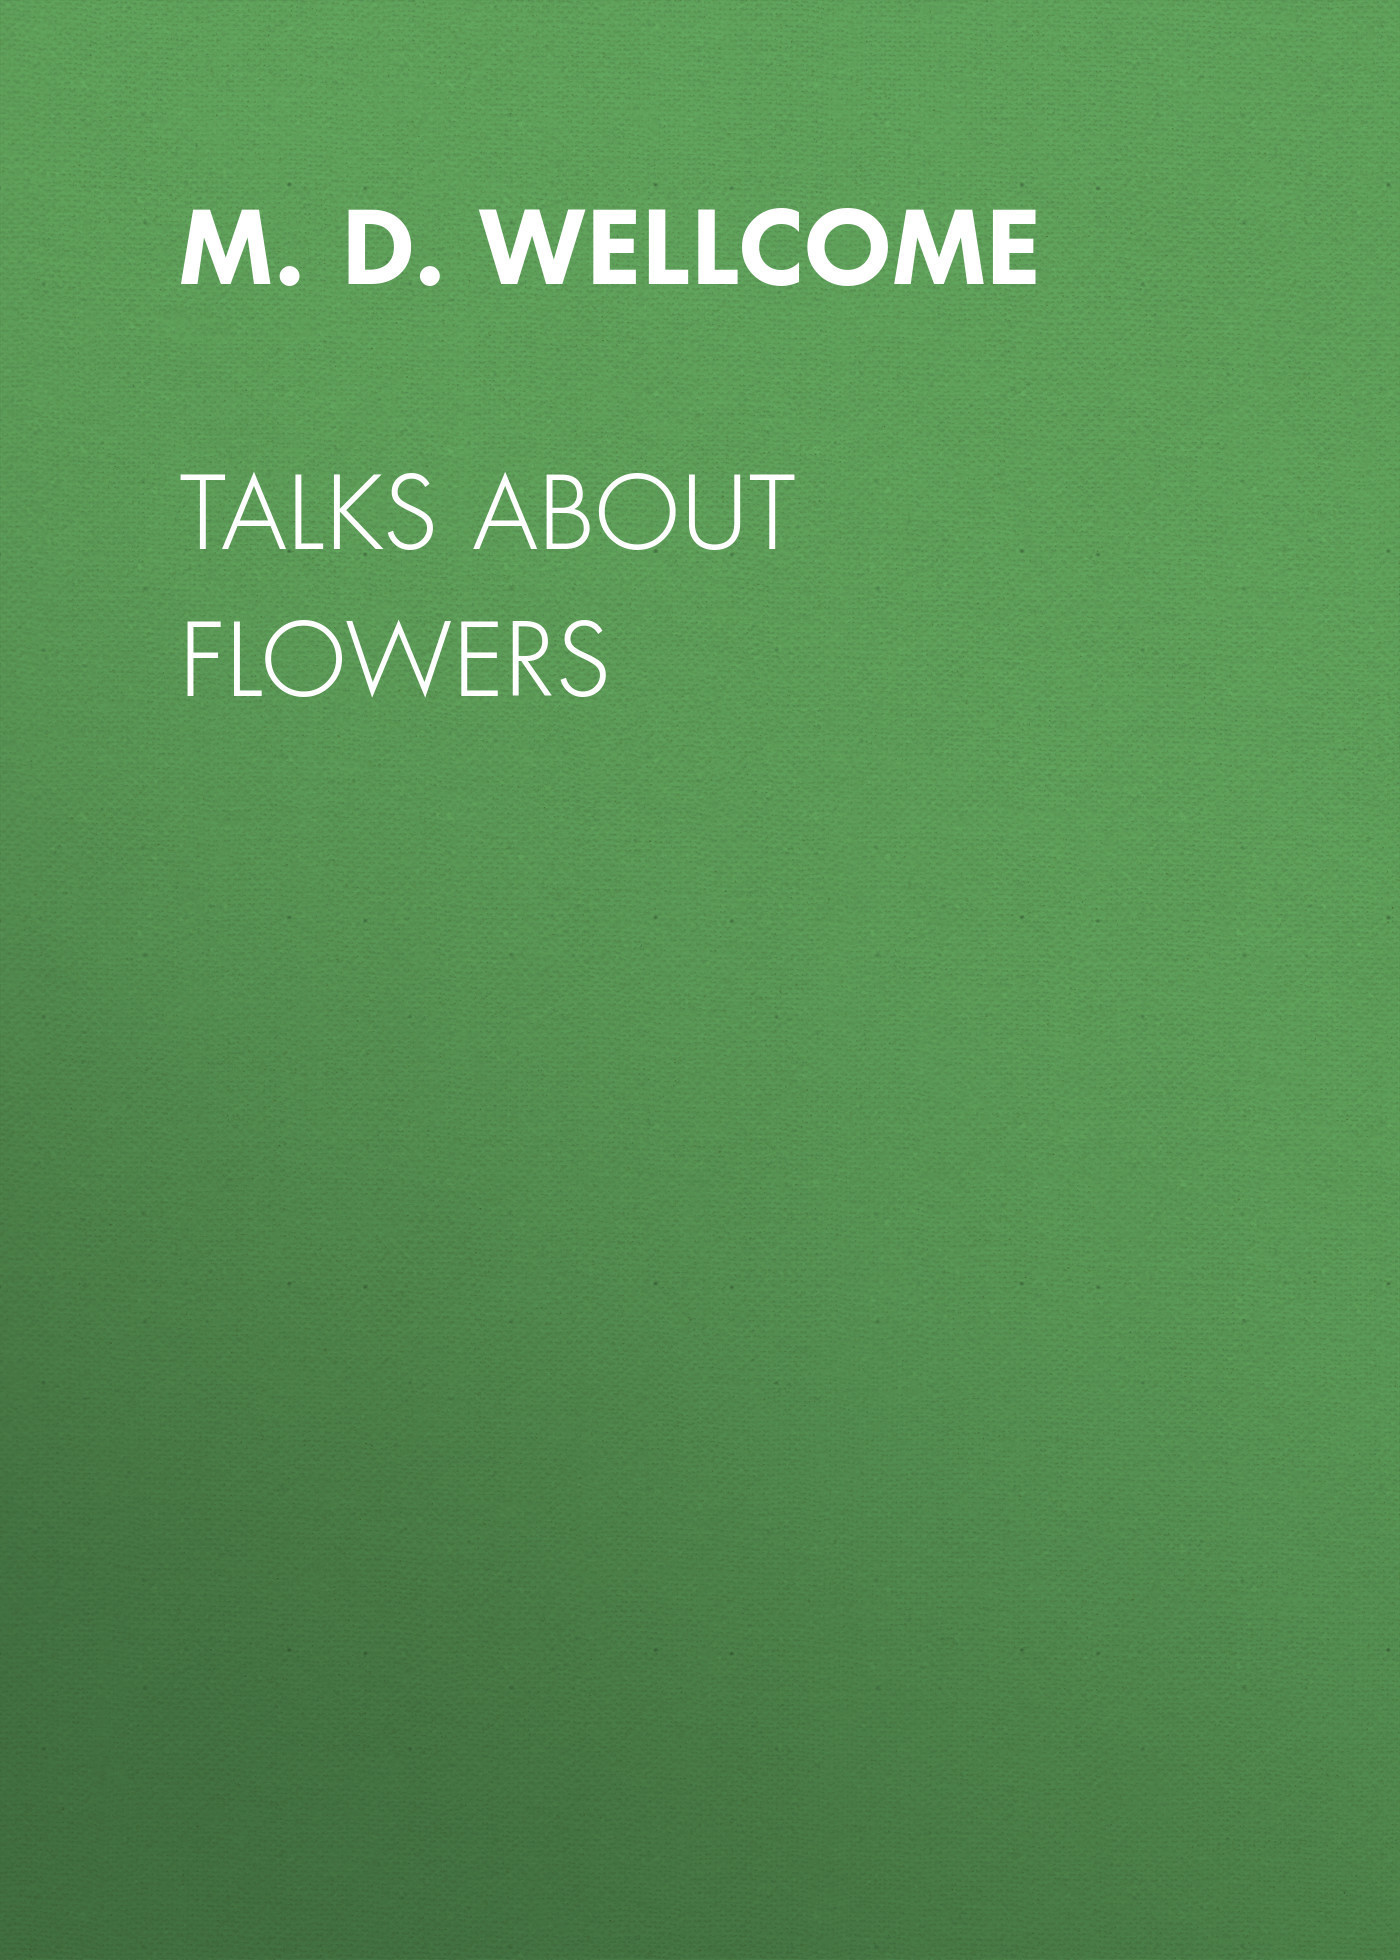 M. D. Wellcome Talks About Flowers catechetical talks